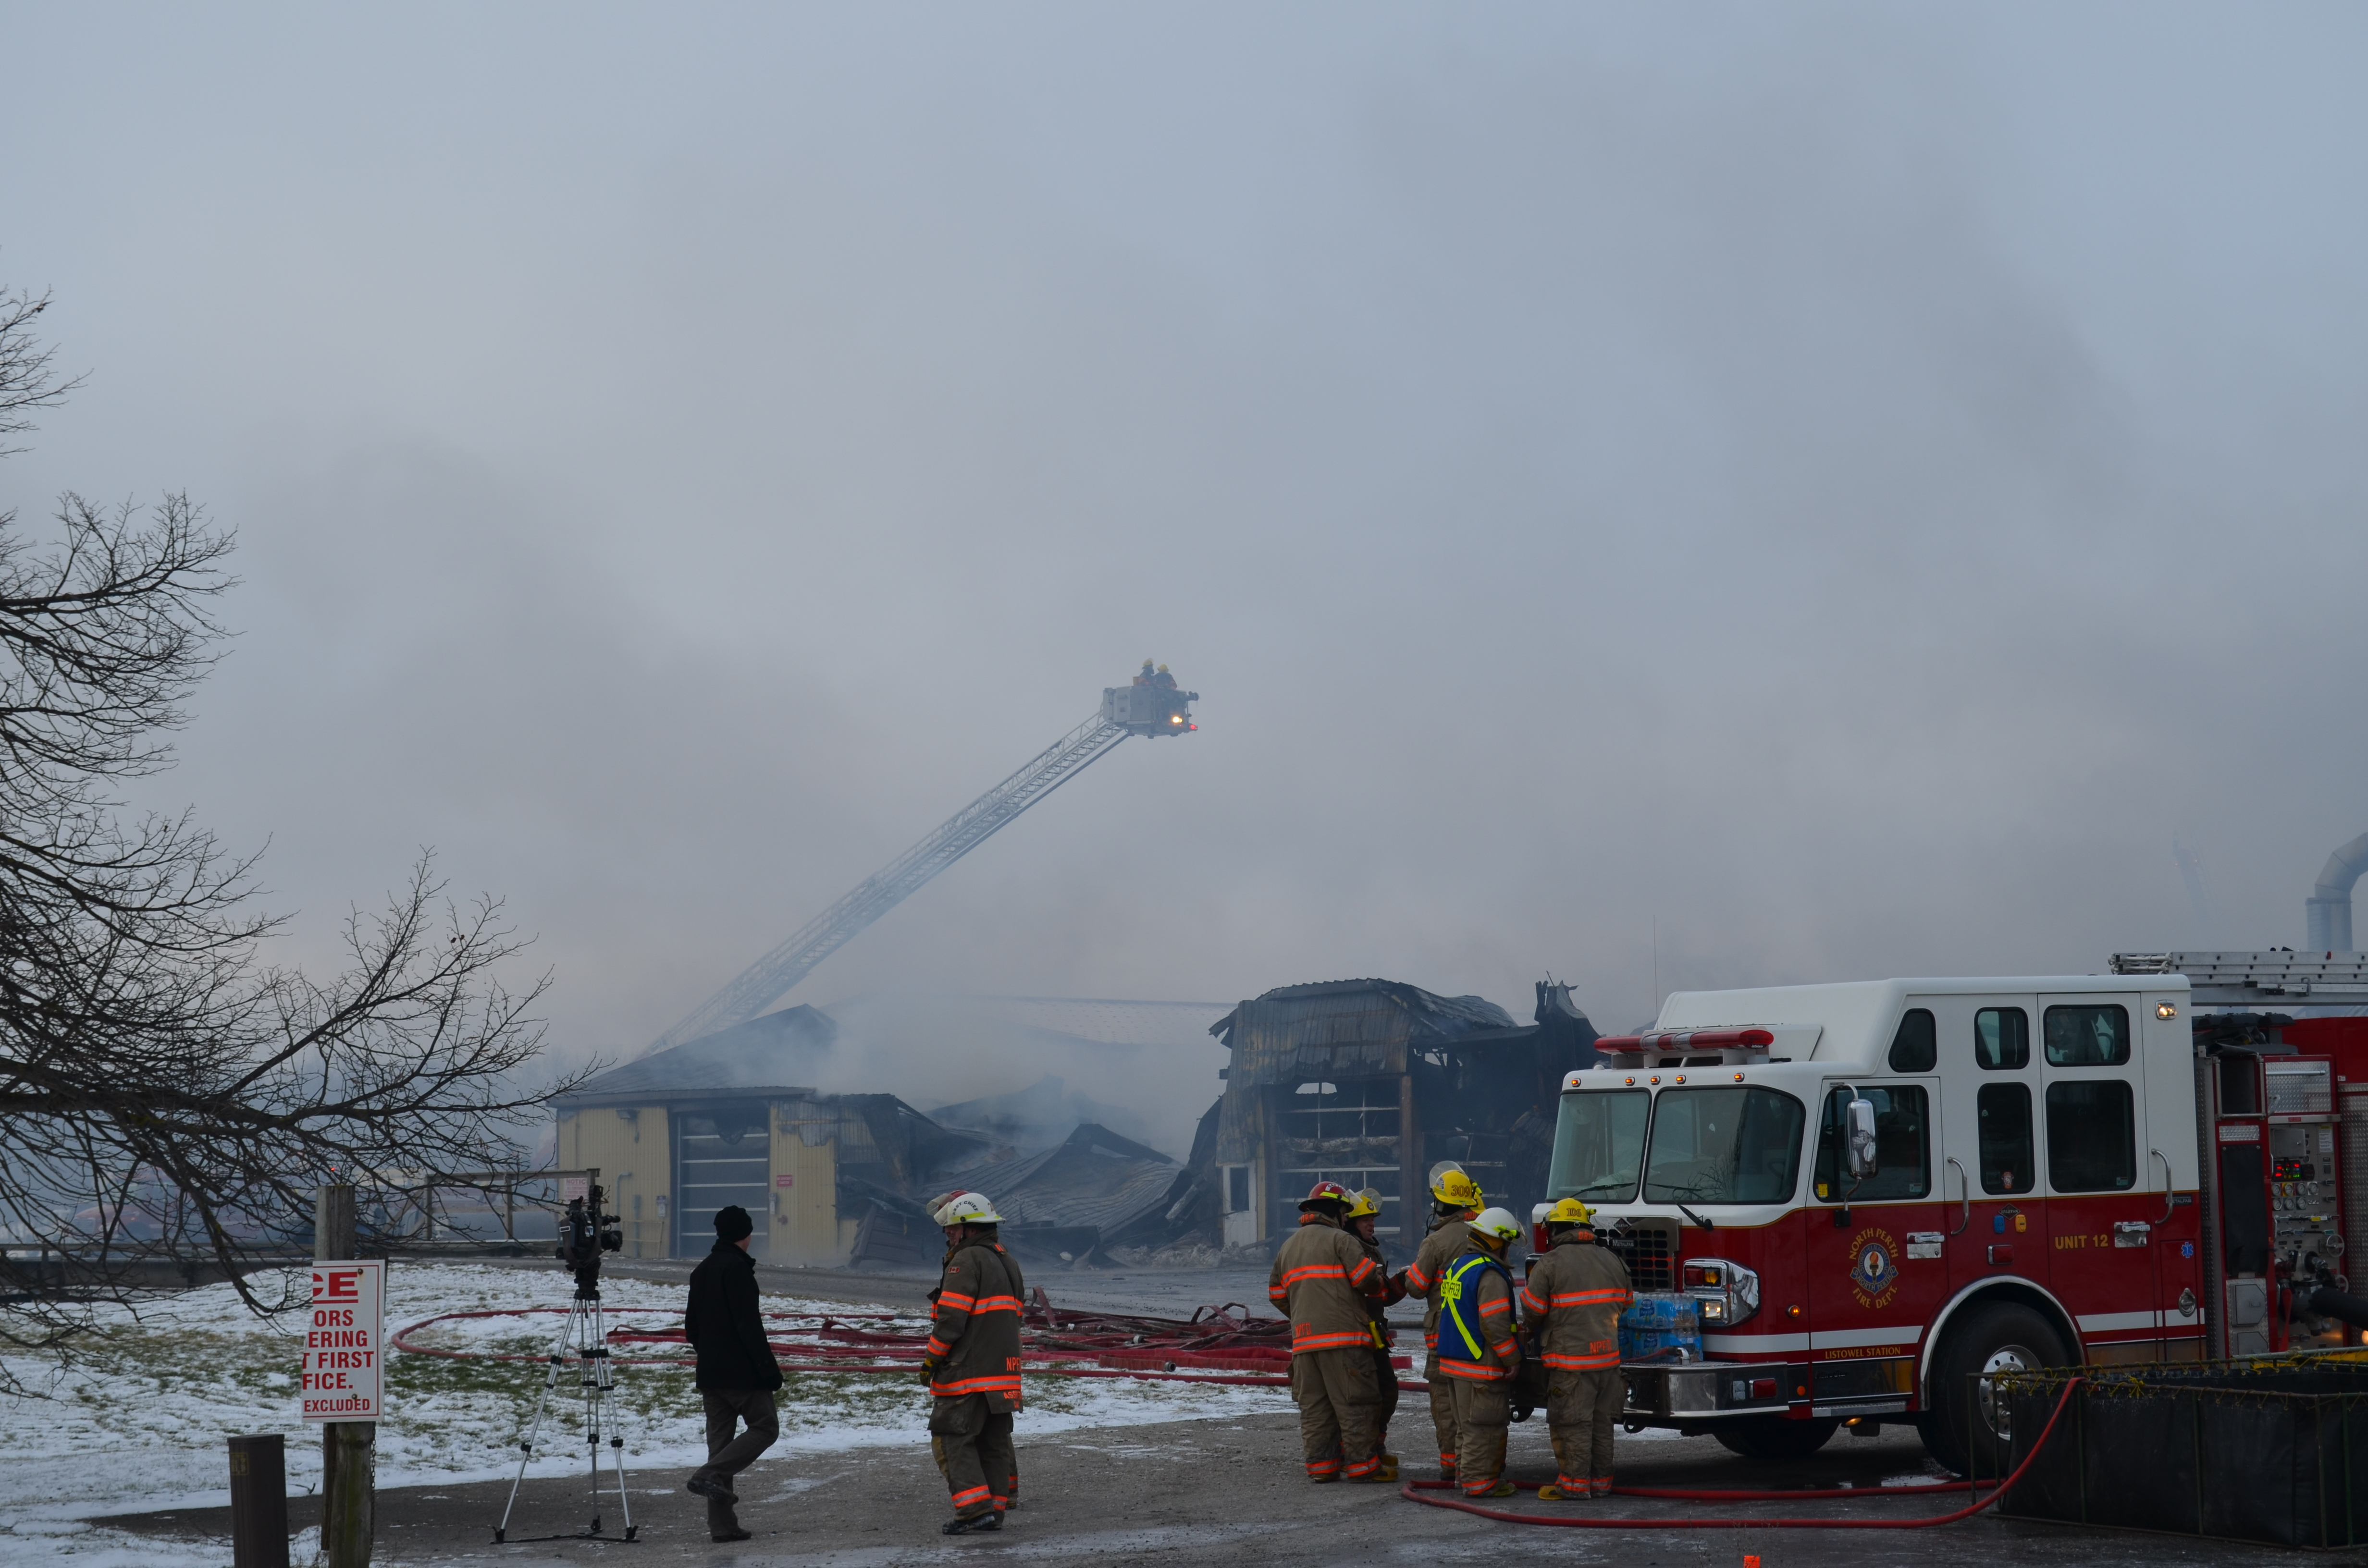 Firefighters use aerial ladder to douse hotspots (blackburnnews.com photo)